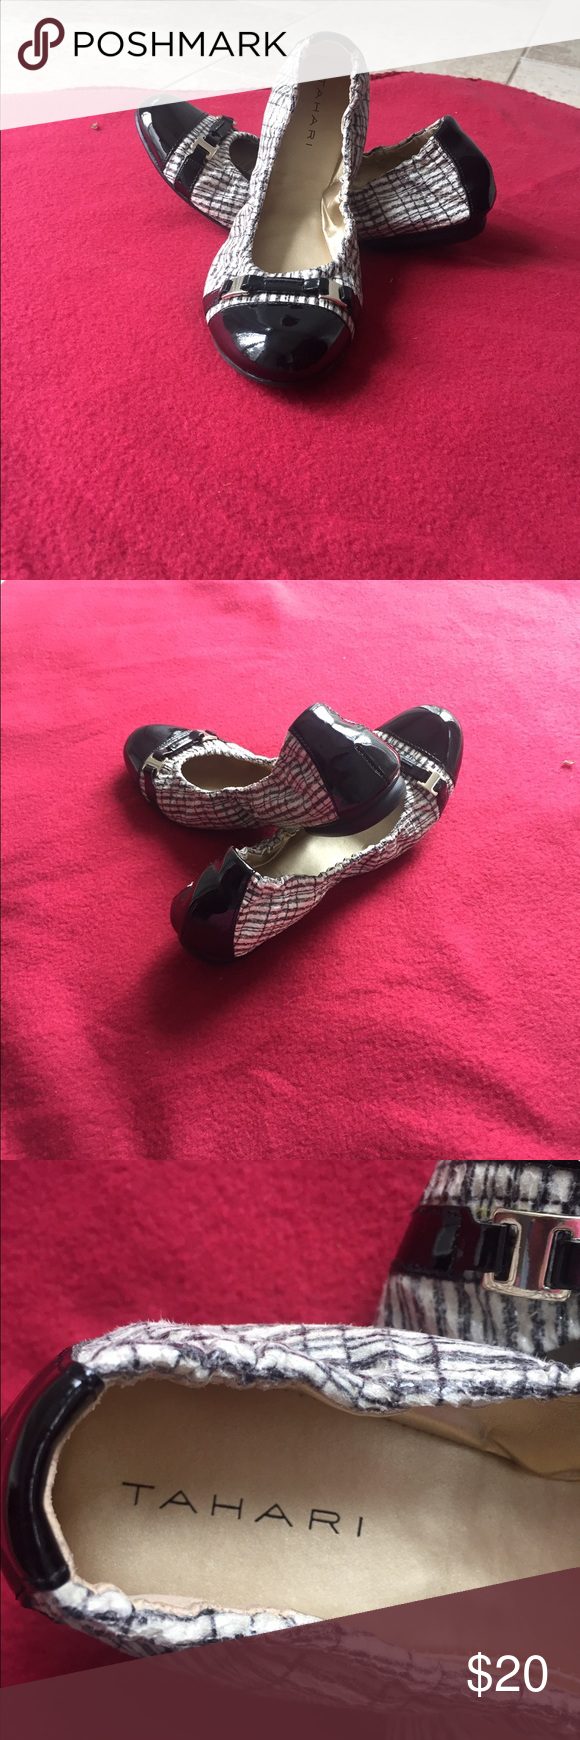 Black & white scrunch flats!💙 Black and white striped scrunched flats with a cute silver buckle. You can wear with or without socks! Perfect for all year round💙! Tahari Shoes Flats & Loafers